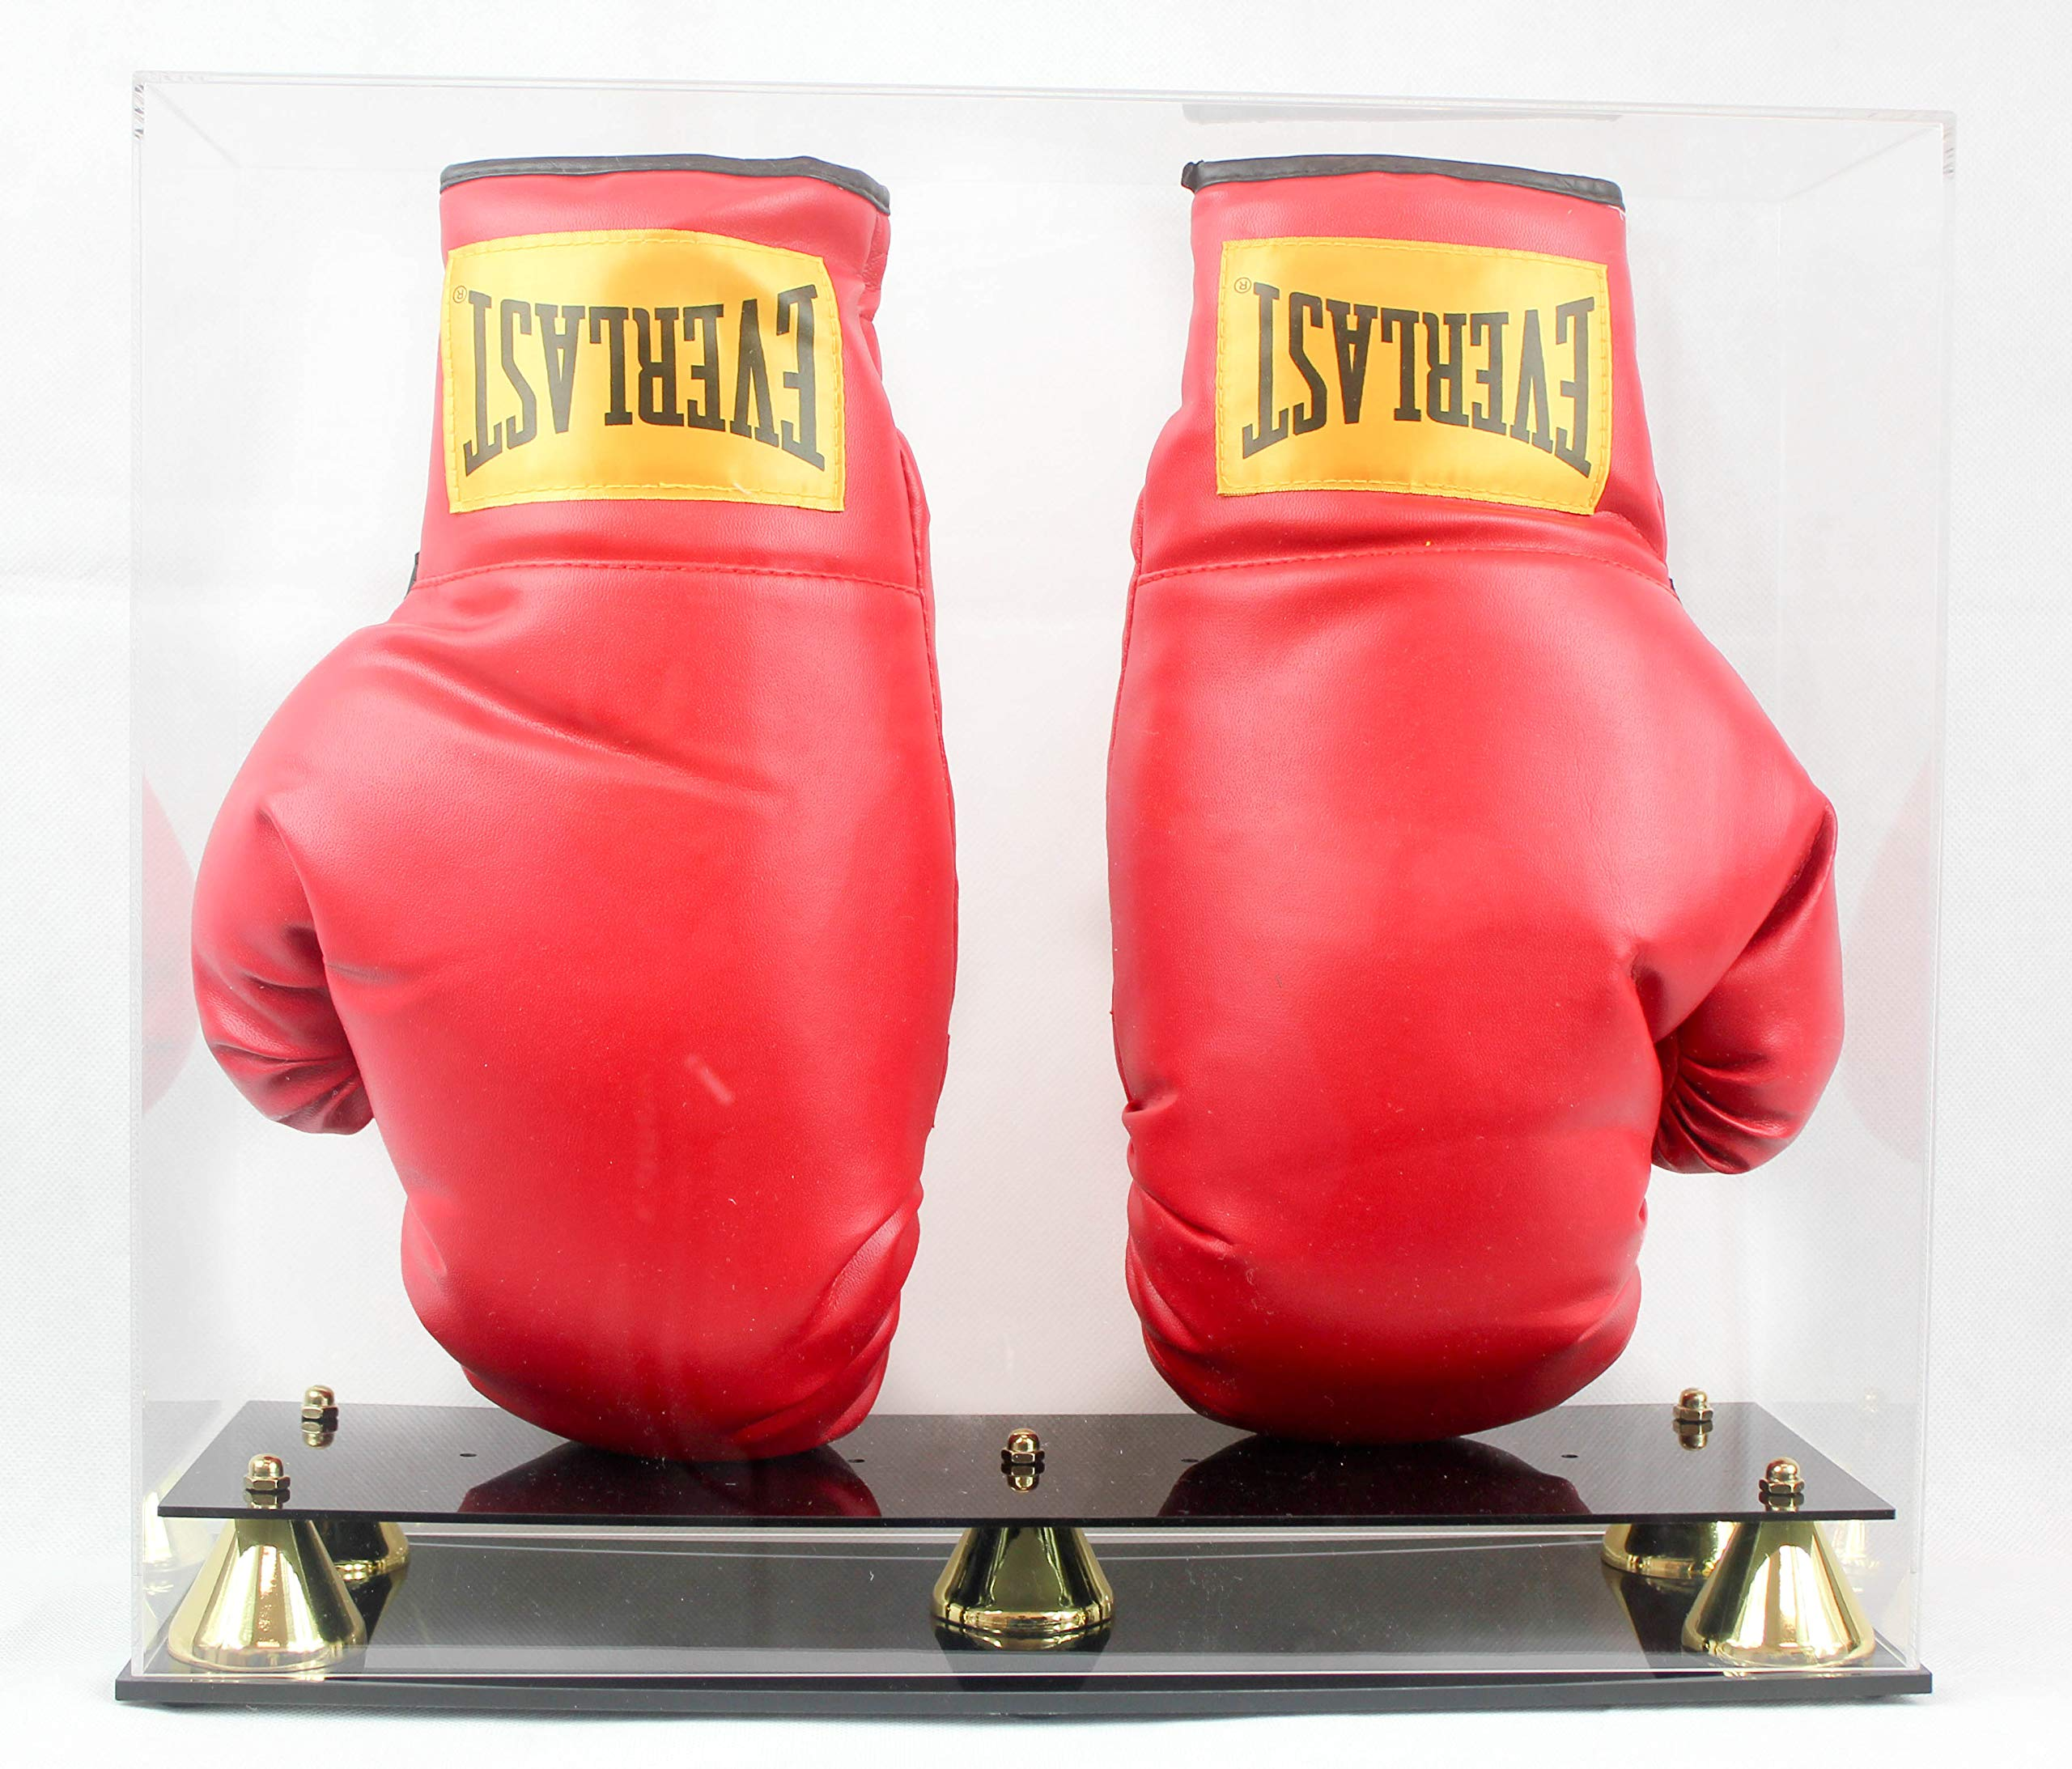 Boxing Glove Display Case Holder Showcase, with Stands for the Gloves, UV Protection, Elegant Riser Stand (Two Gloves)